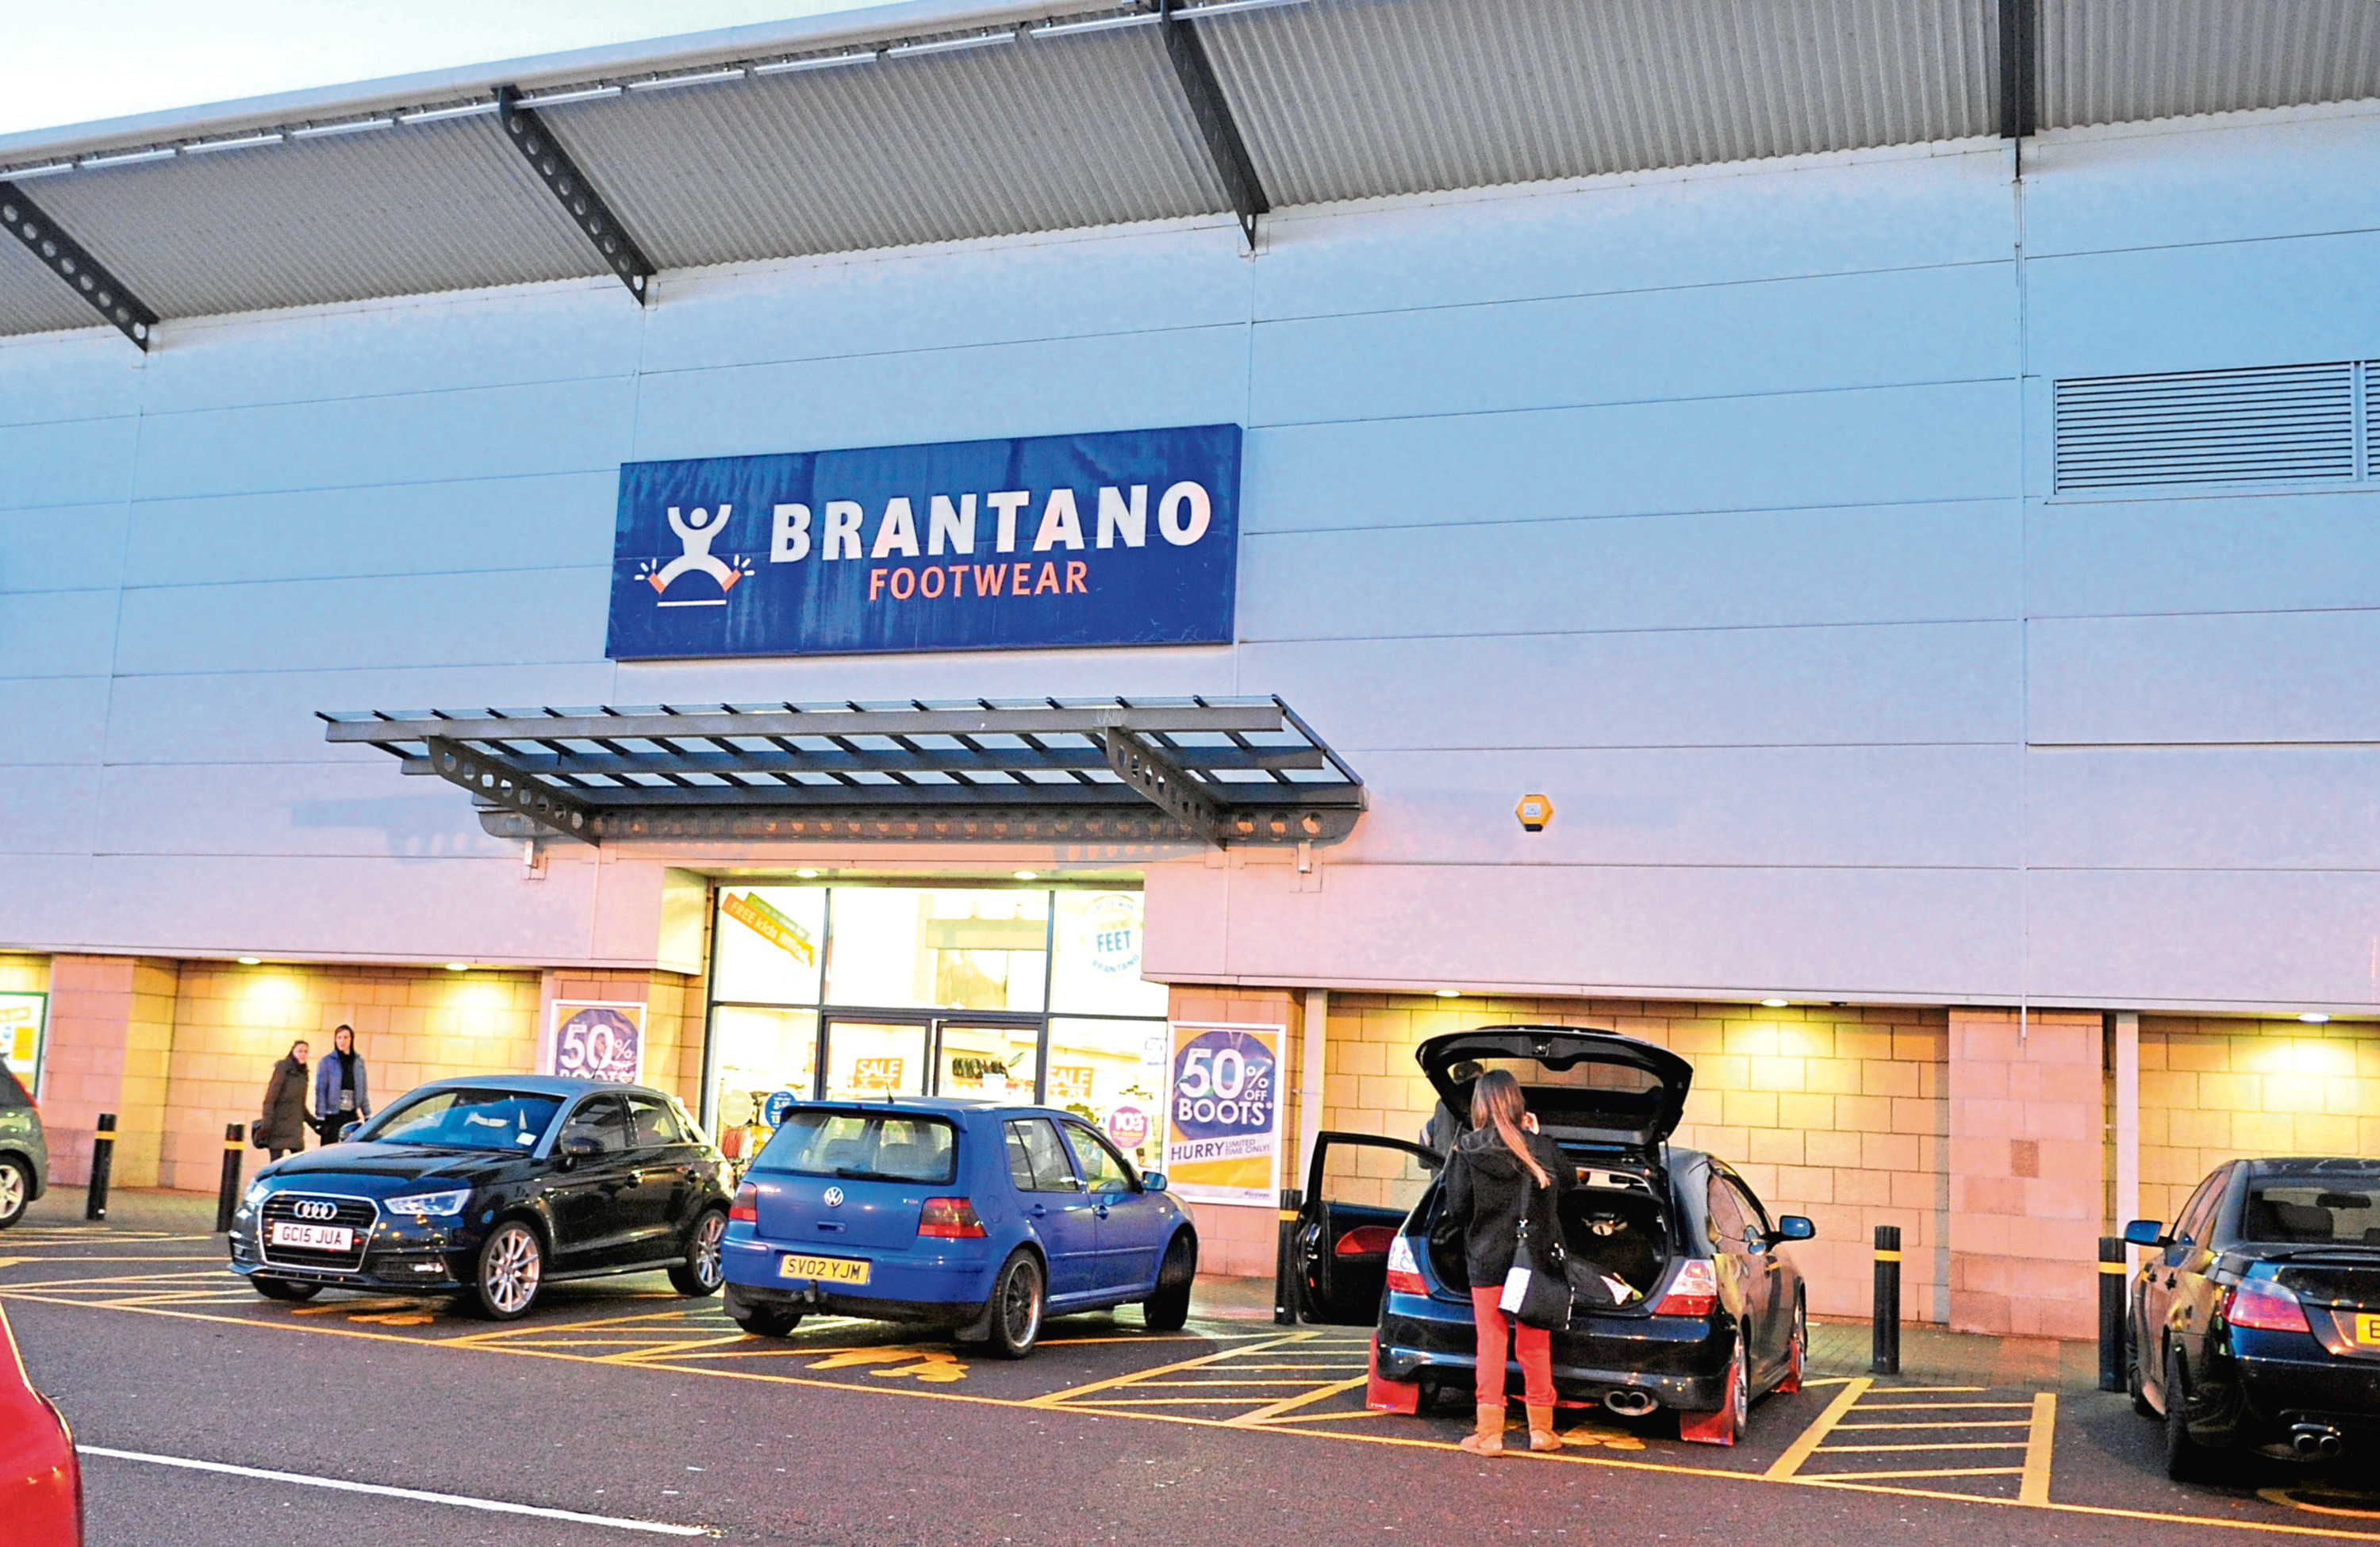 Proposals have been submitted to Aberdeen City Council for a Costa Coffee within the former Brantano outlet at the Beach Boulevard